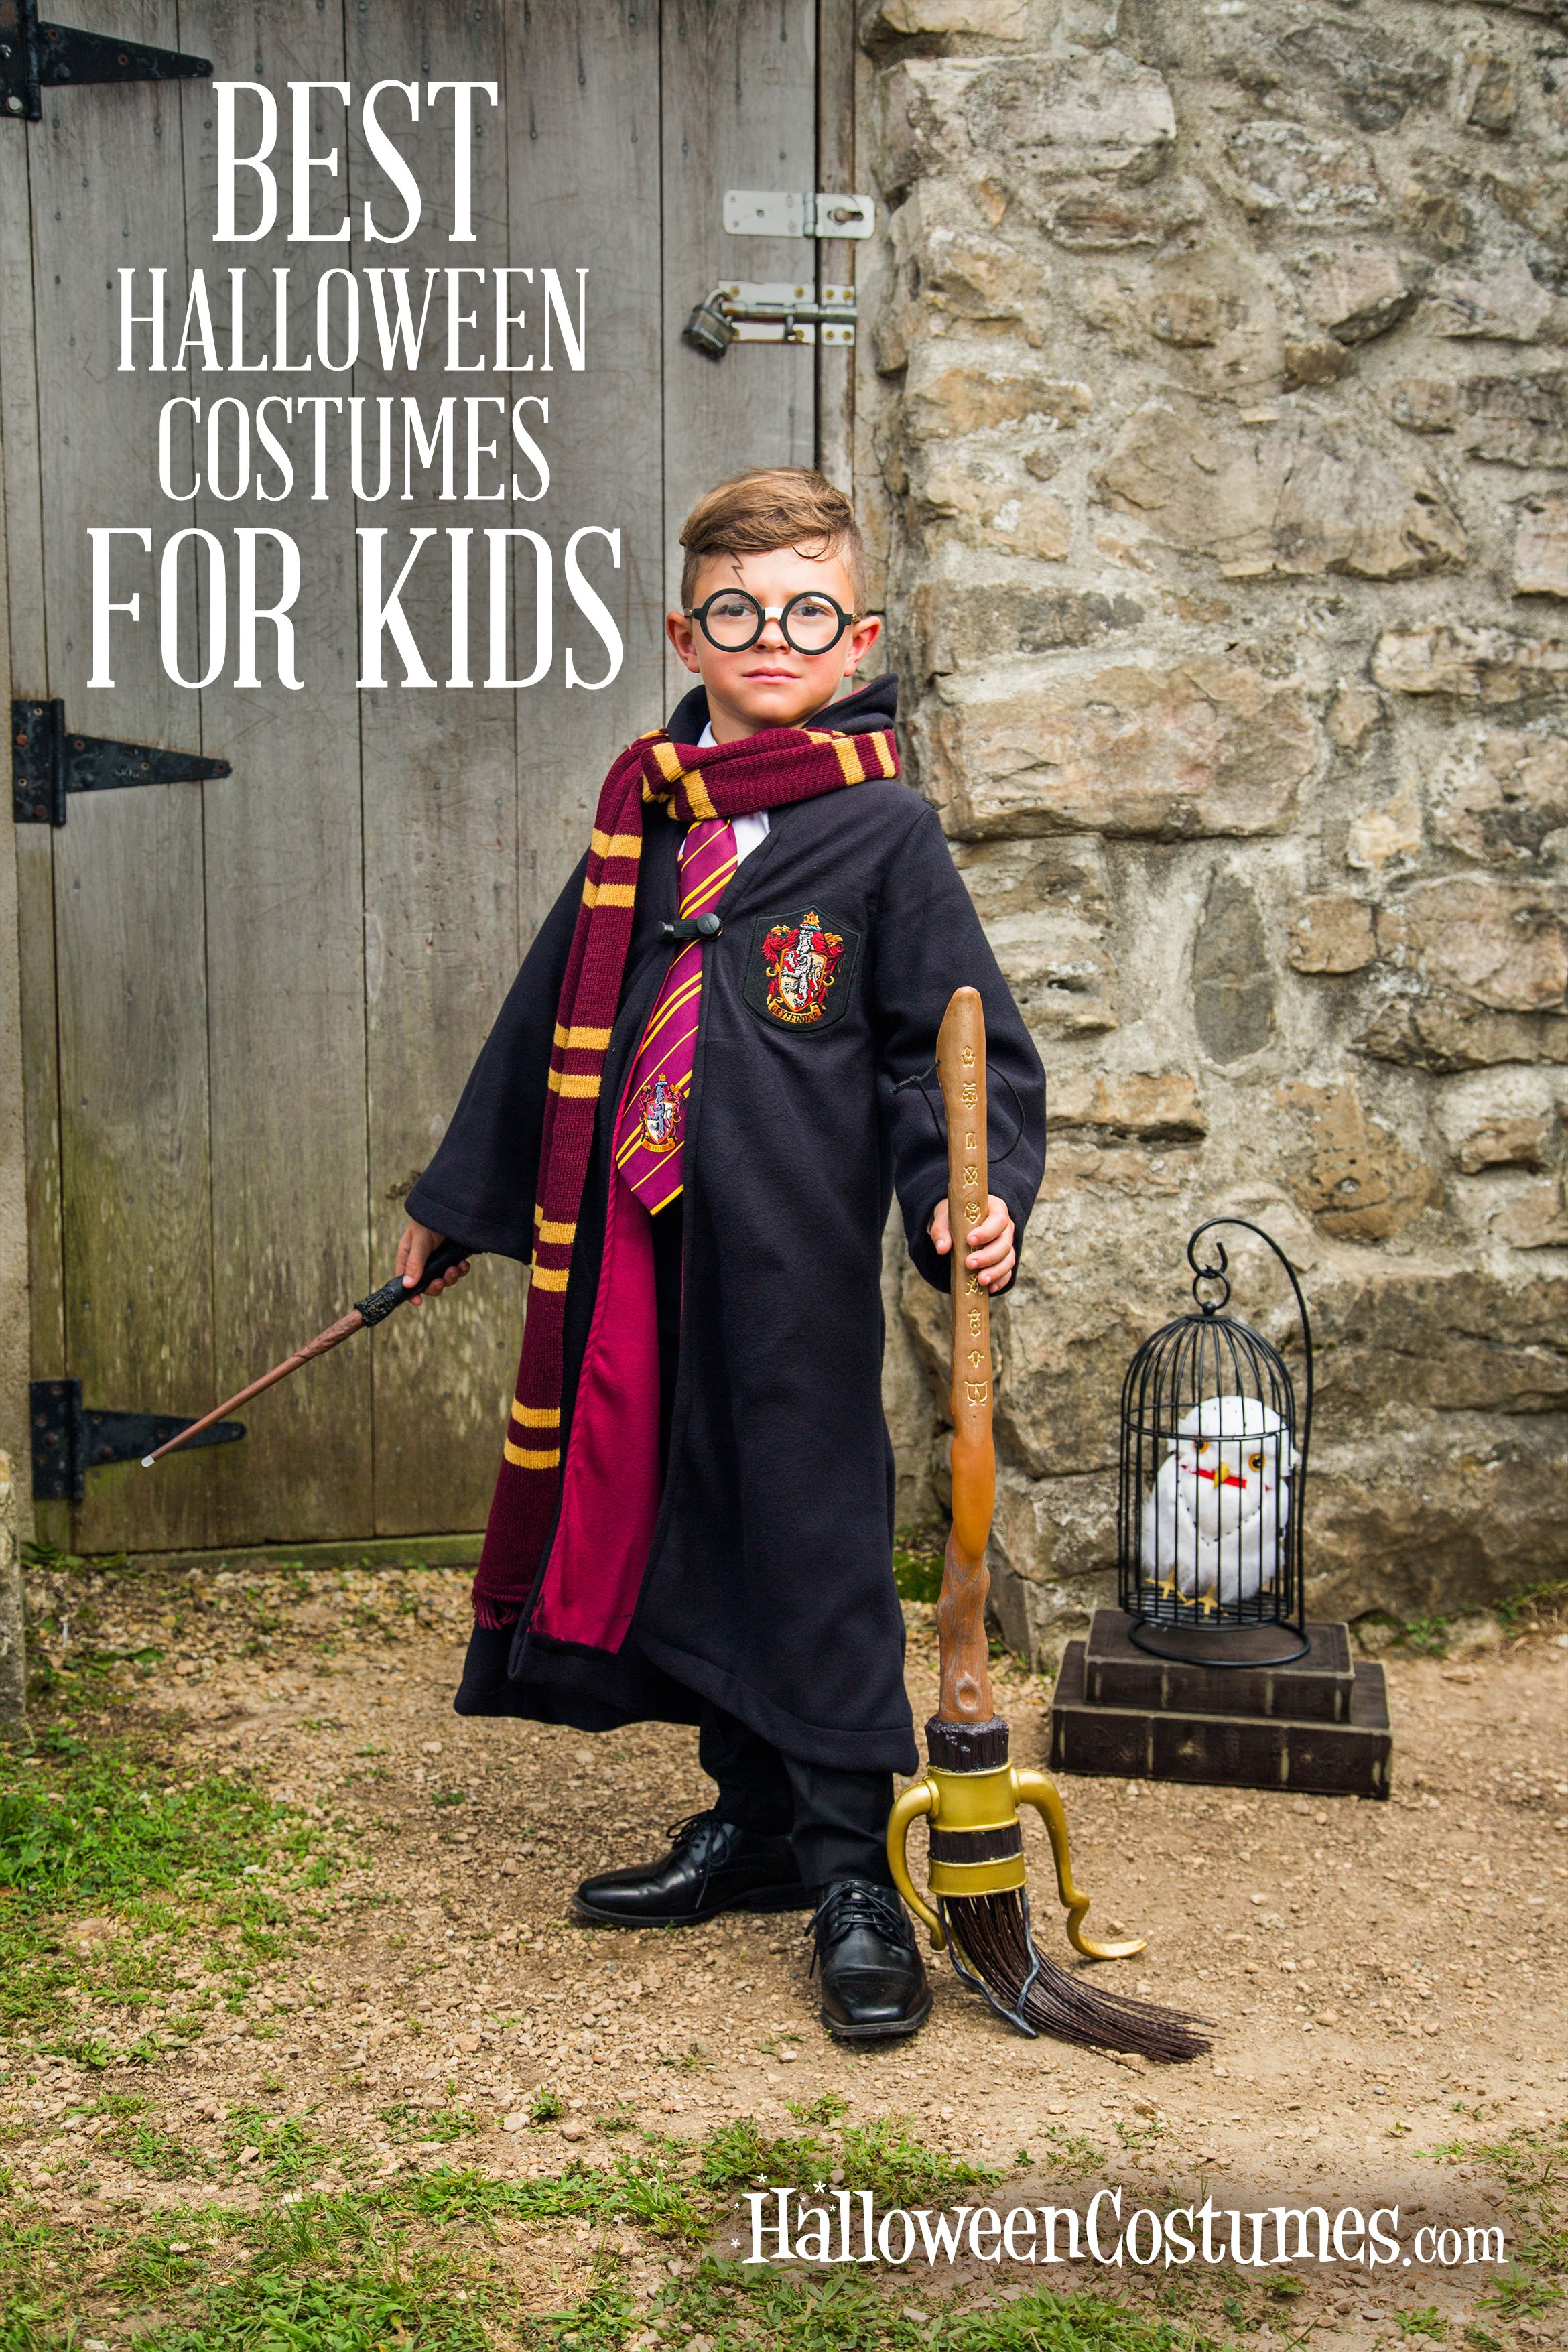 Exclusive online only deals on the top selling kids halloween